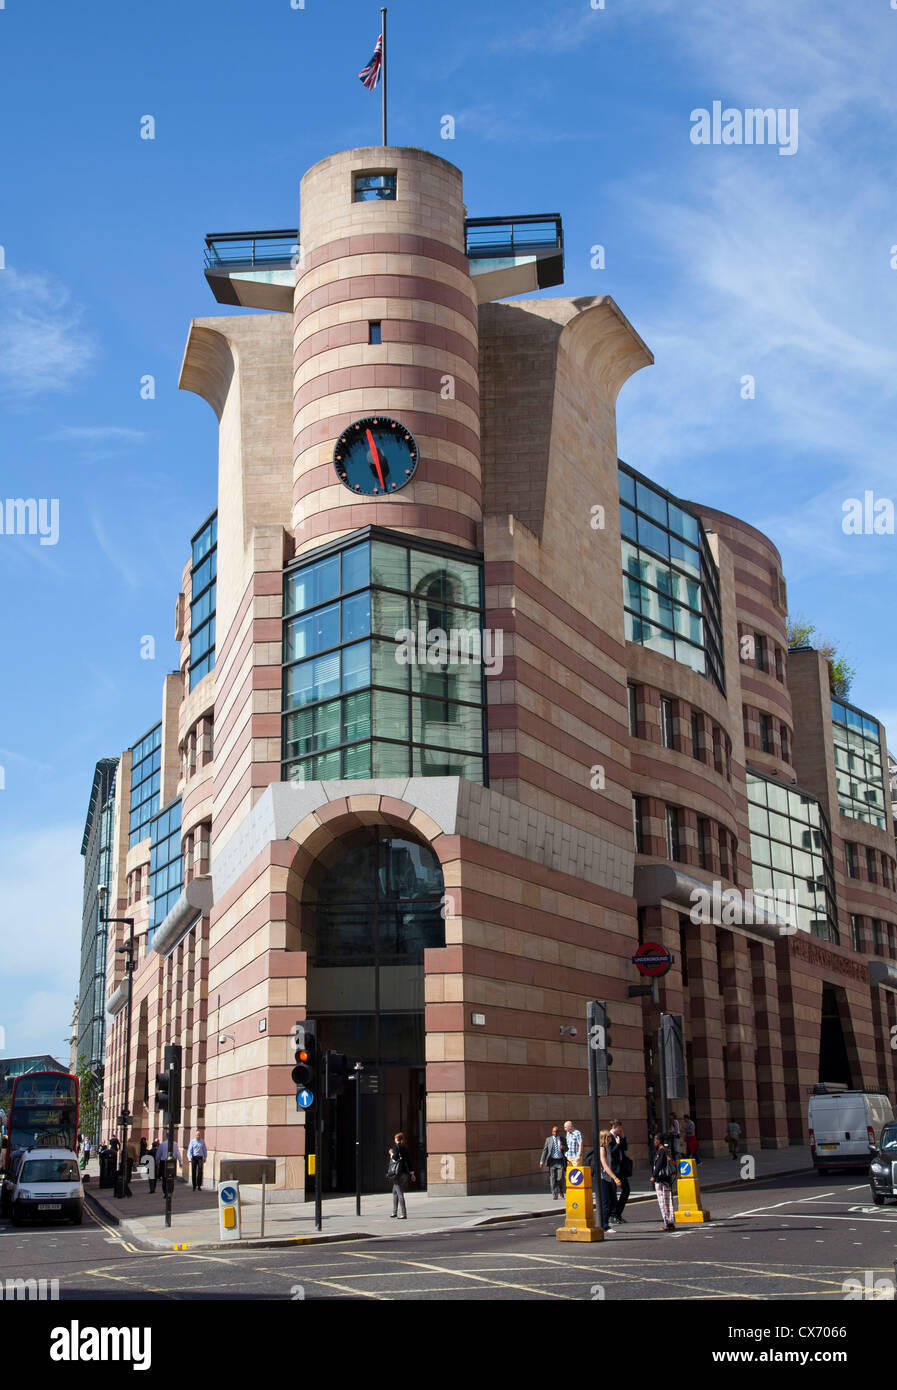 No. 1 Poultry, London - Stock Image